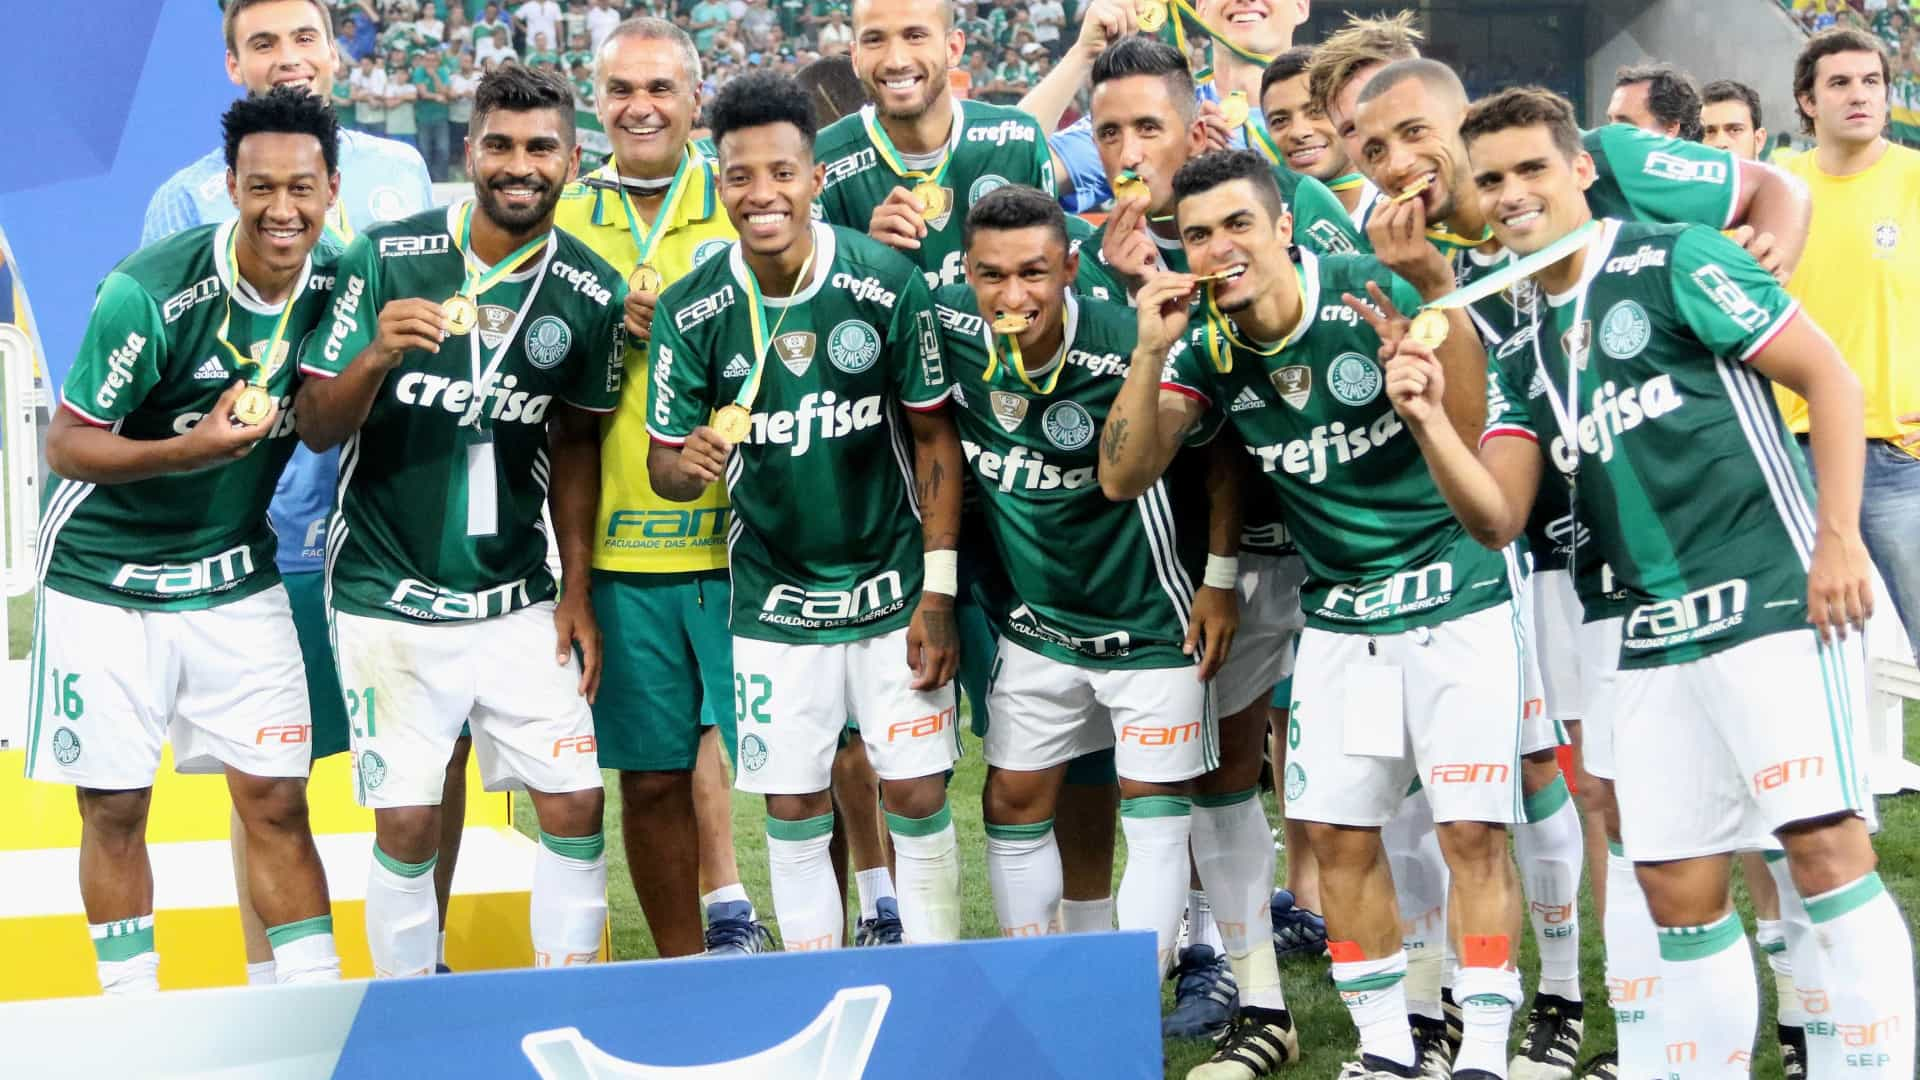 As reações do mundo desportivo à tragédia do Chapecoense